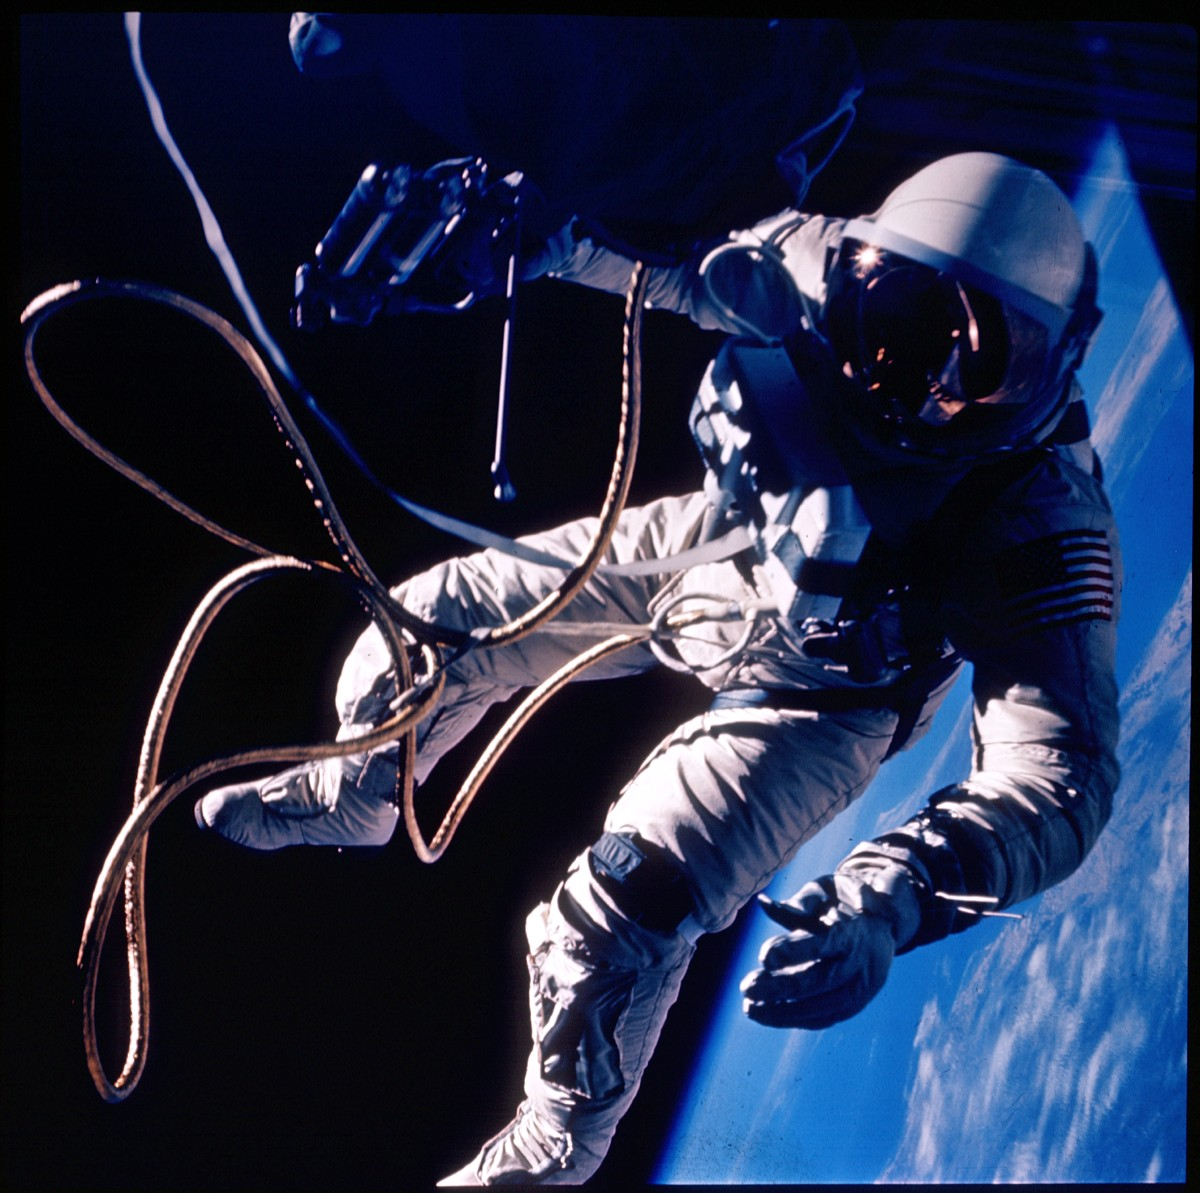 first american astronaut to walk in space - photo #17